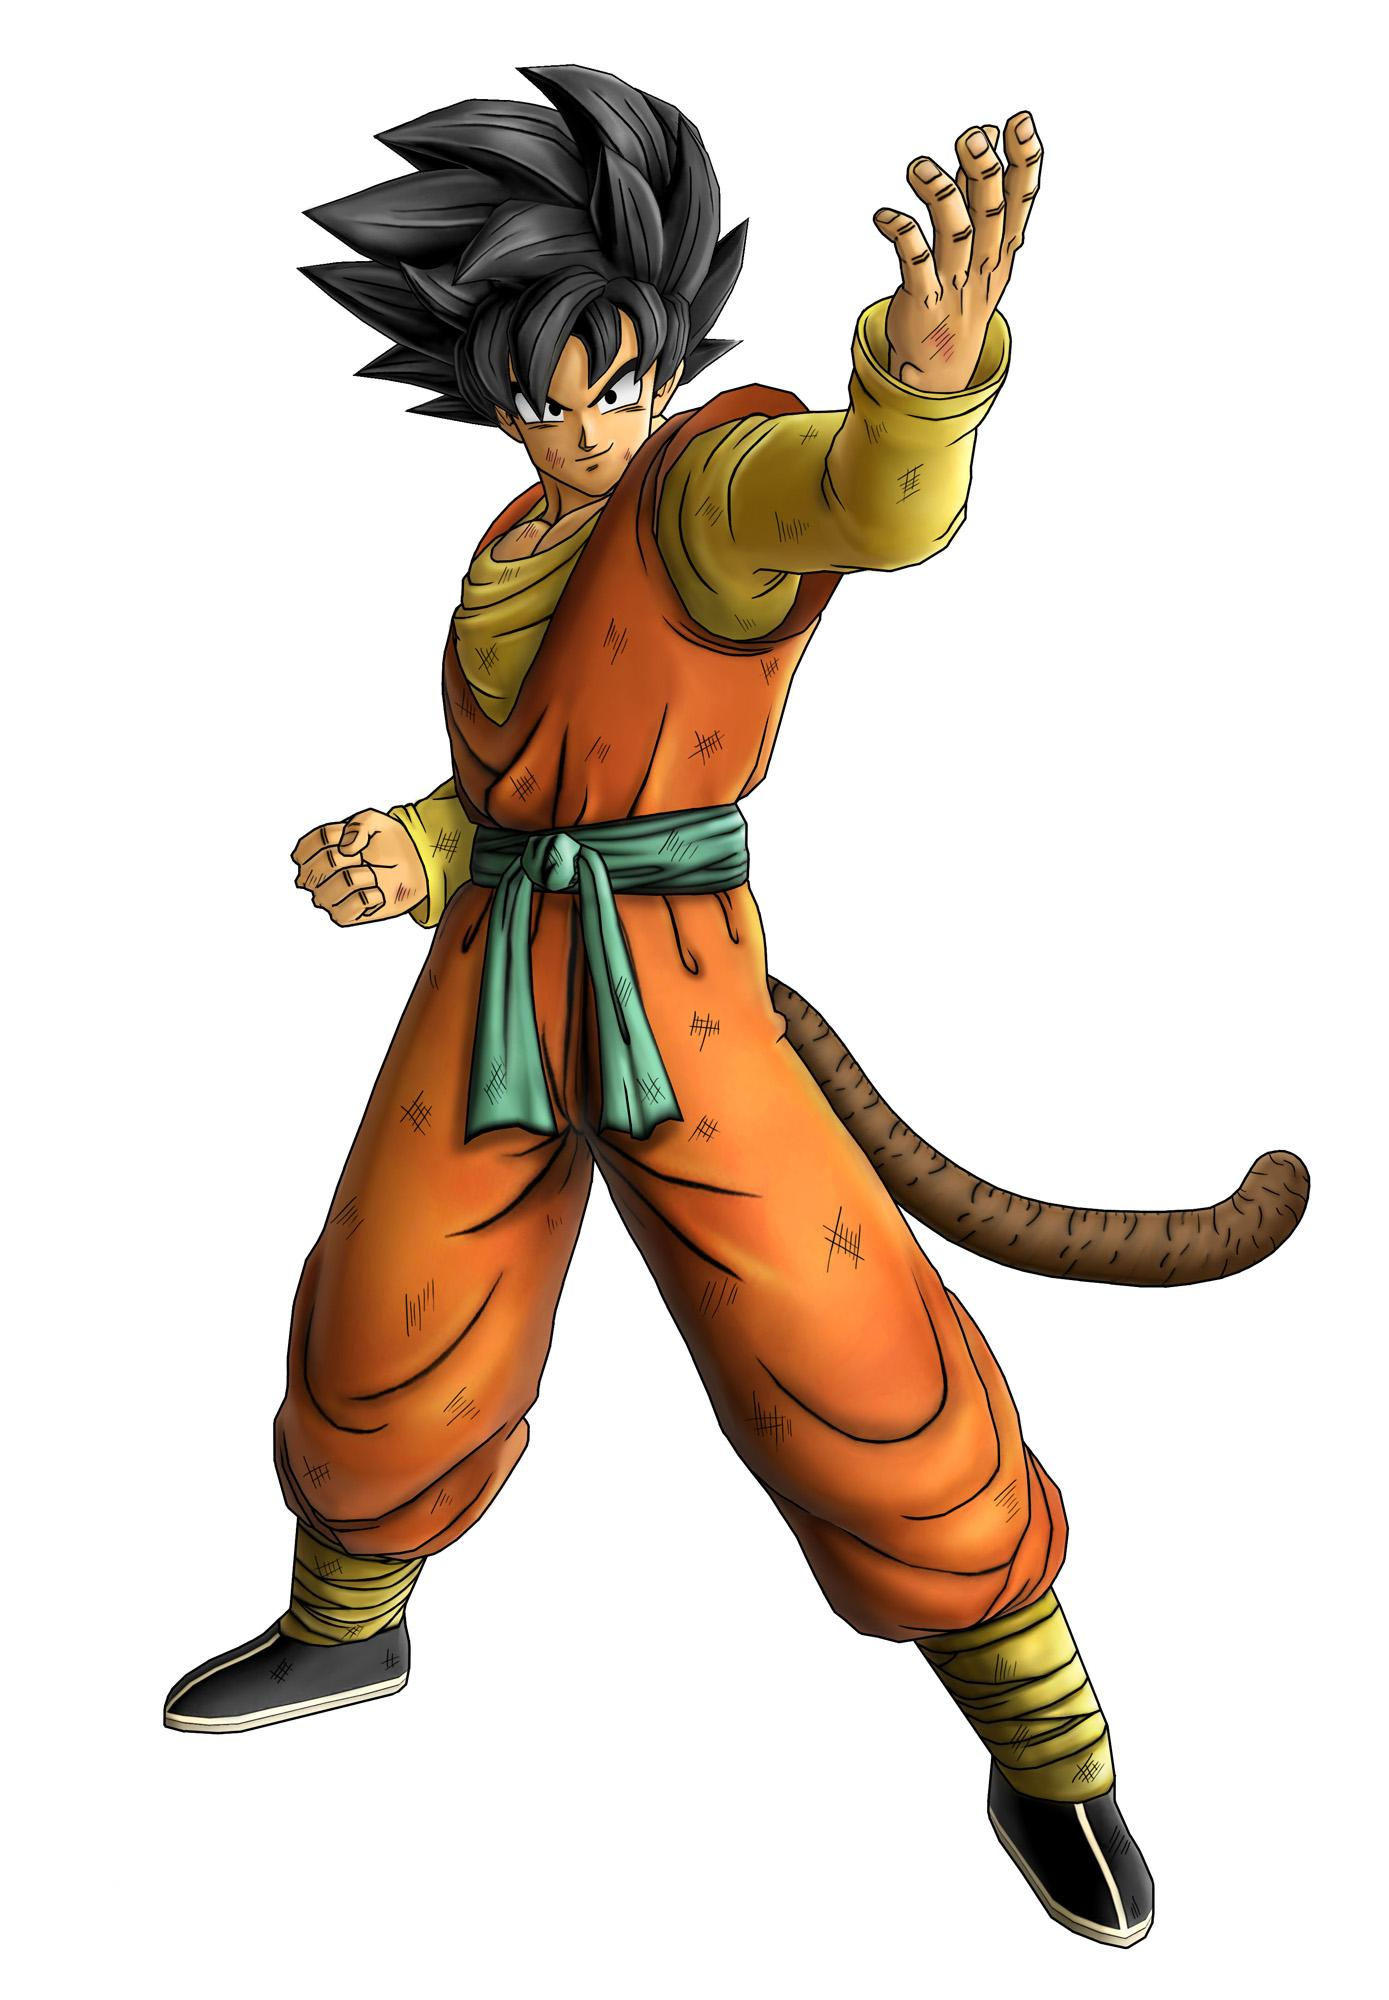 Anime Characters A Z : Ultimate tenkaichi hero dragon ball wiki fandom